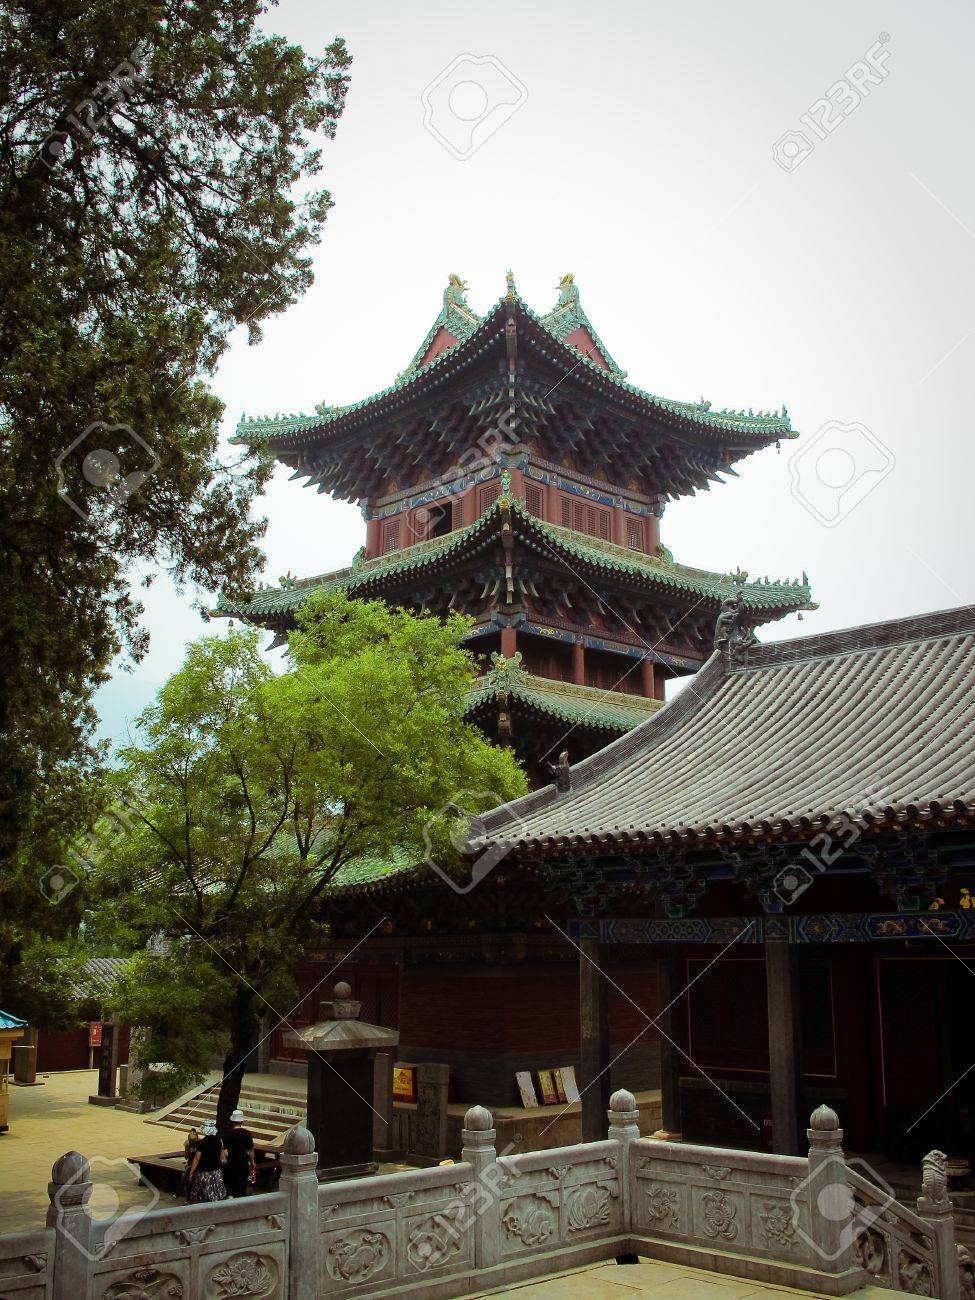 Shaolin Temple in Dengfeng of Henan Province, China. - 10400297